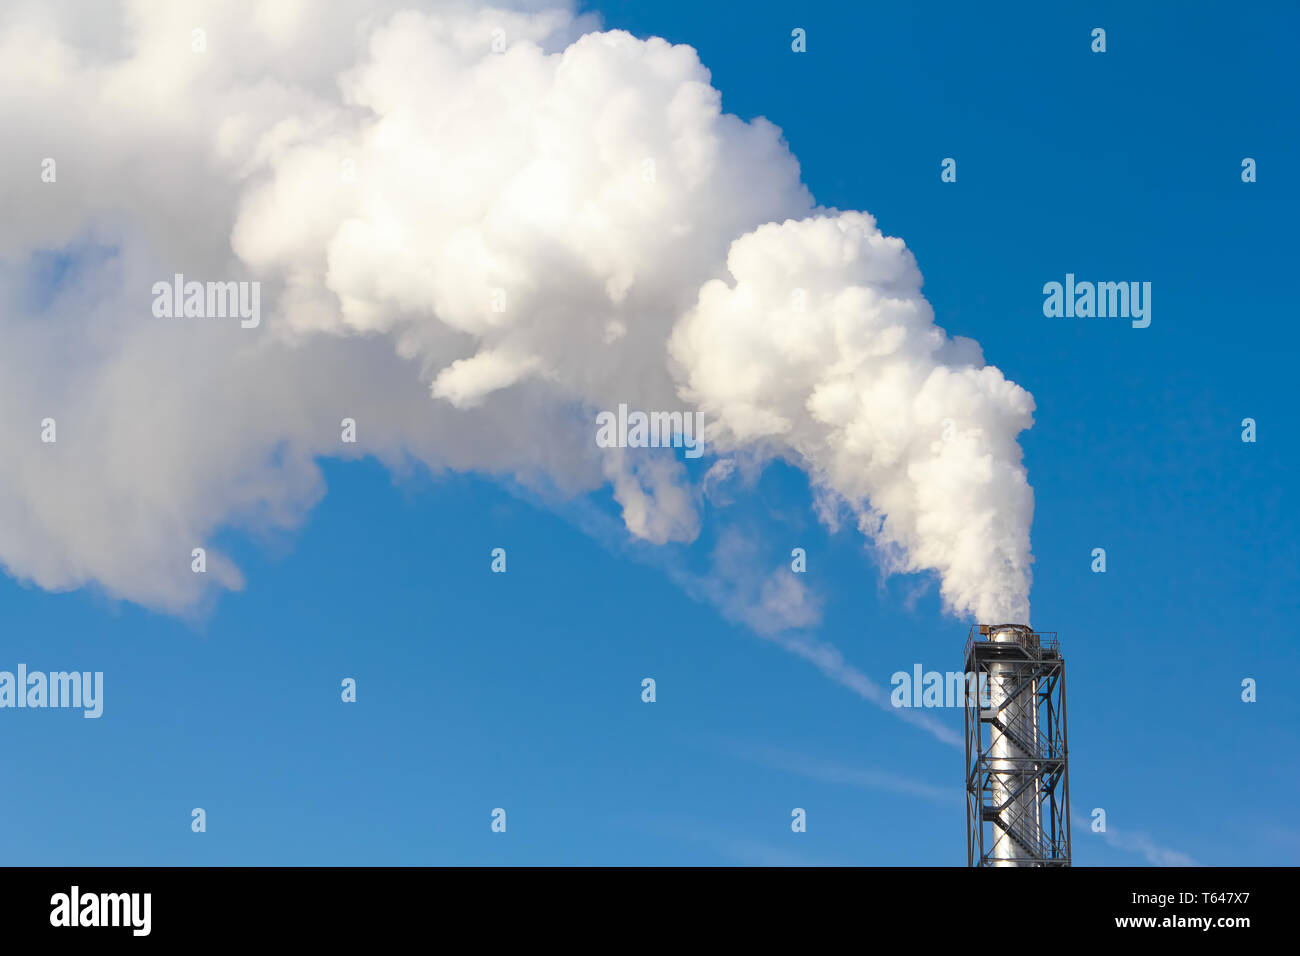 Polluting white smoke coming out of chimney - Stock Image